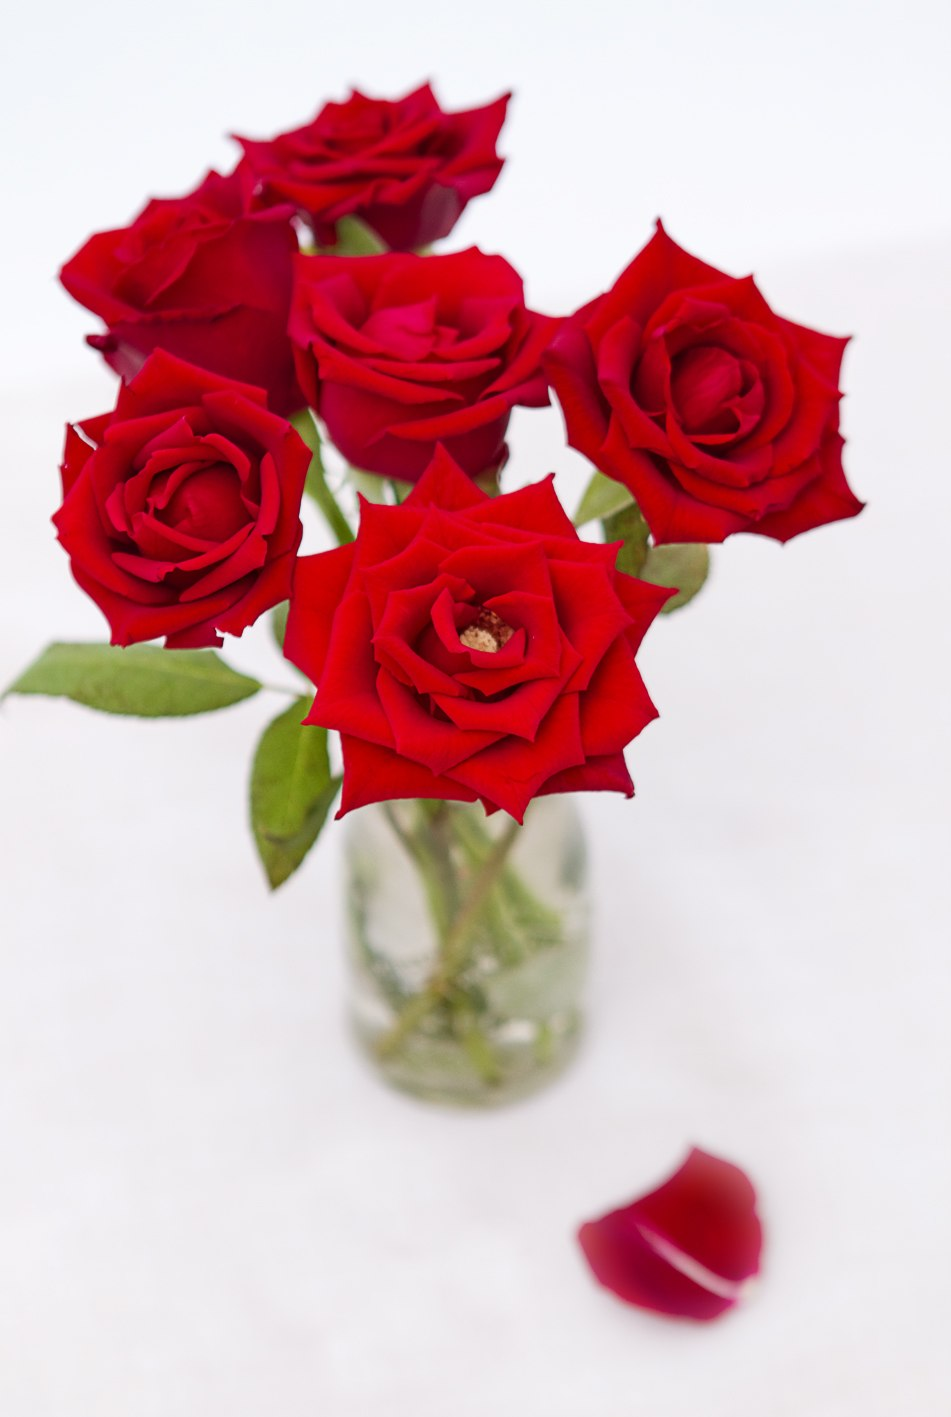 Red Roses (6862116332)